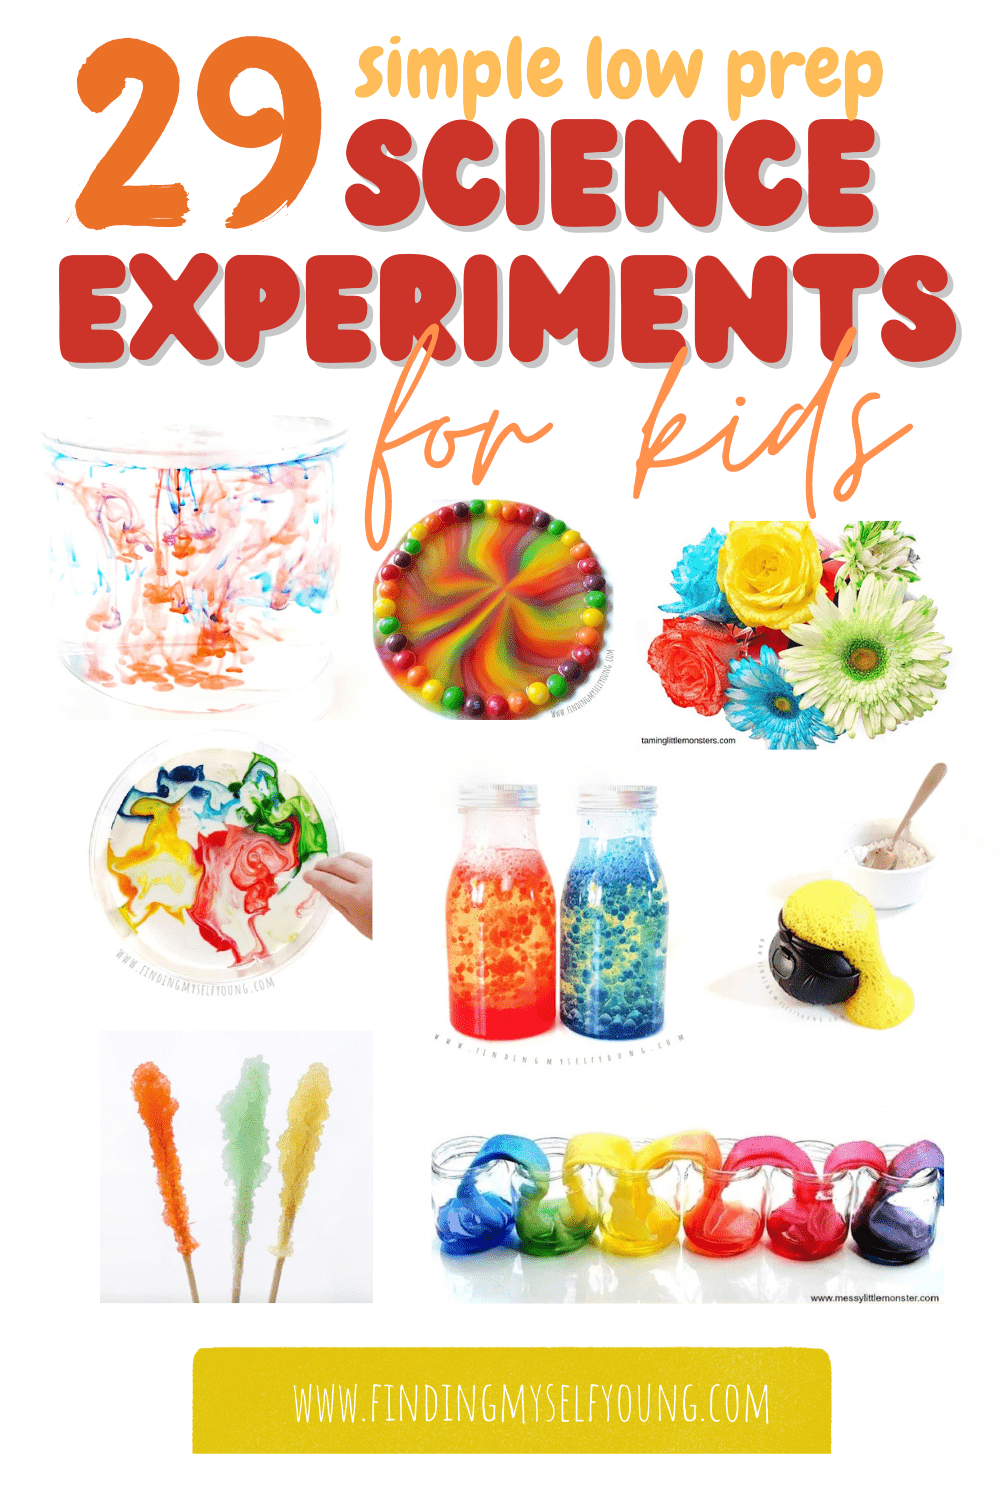 29 simple low prep science experiments for kids of all ages